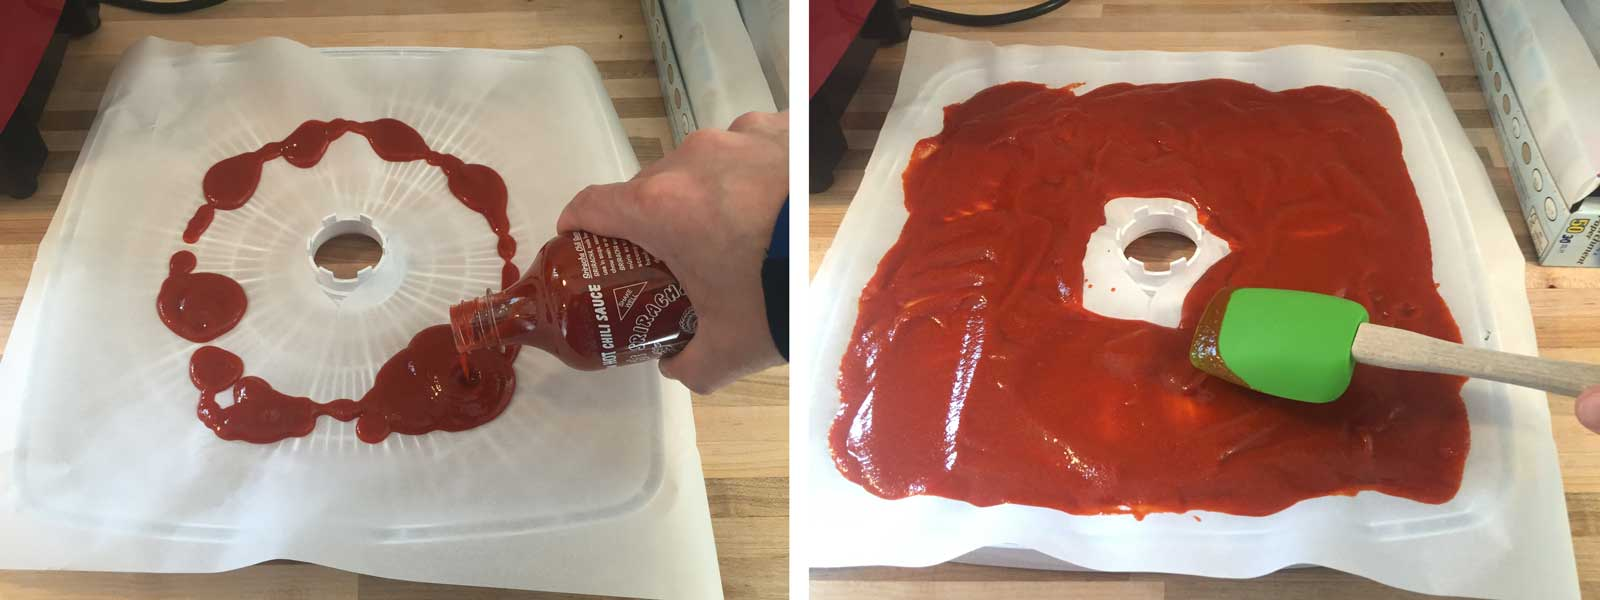 Dehydrating a bottle of Sriracha for backpacking